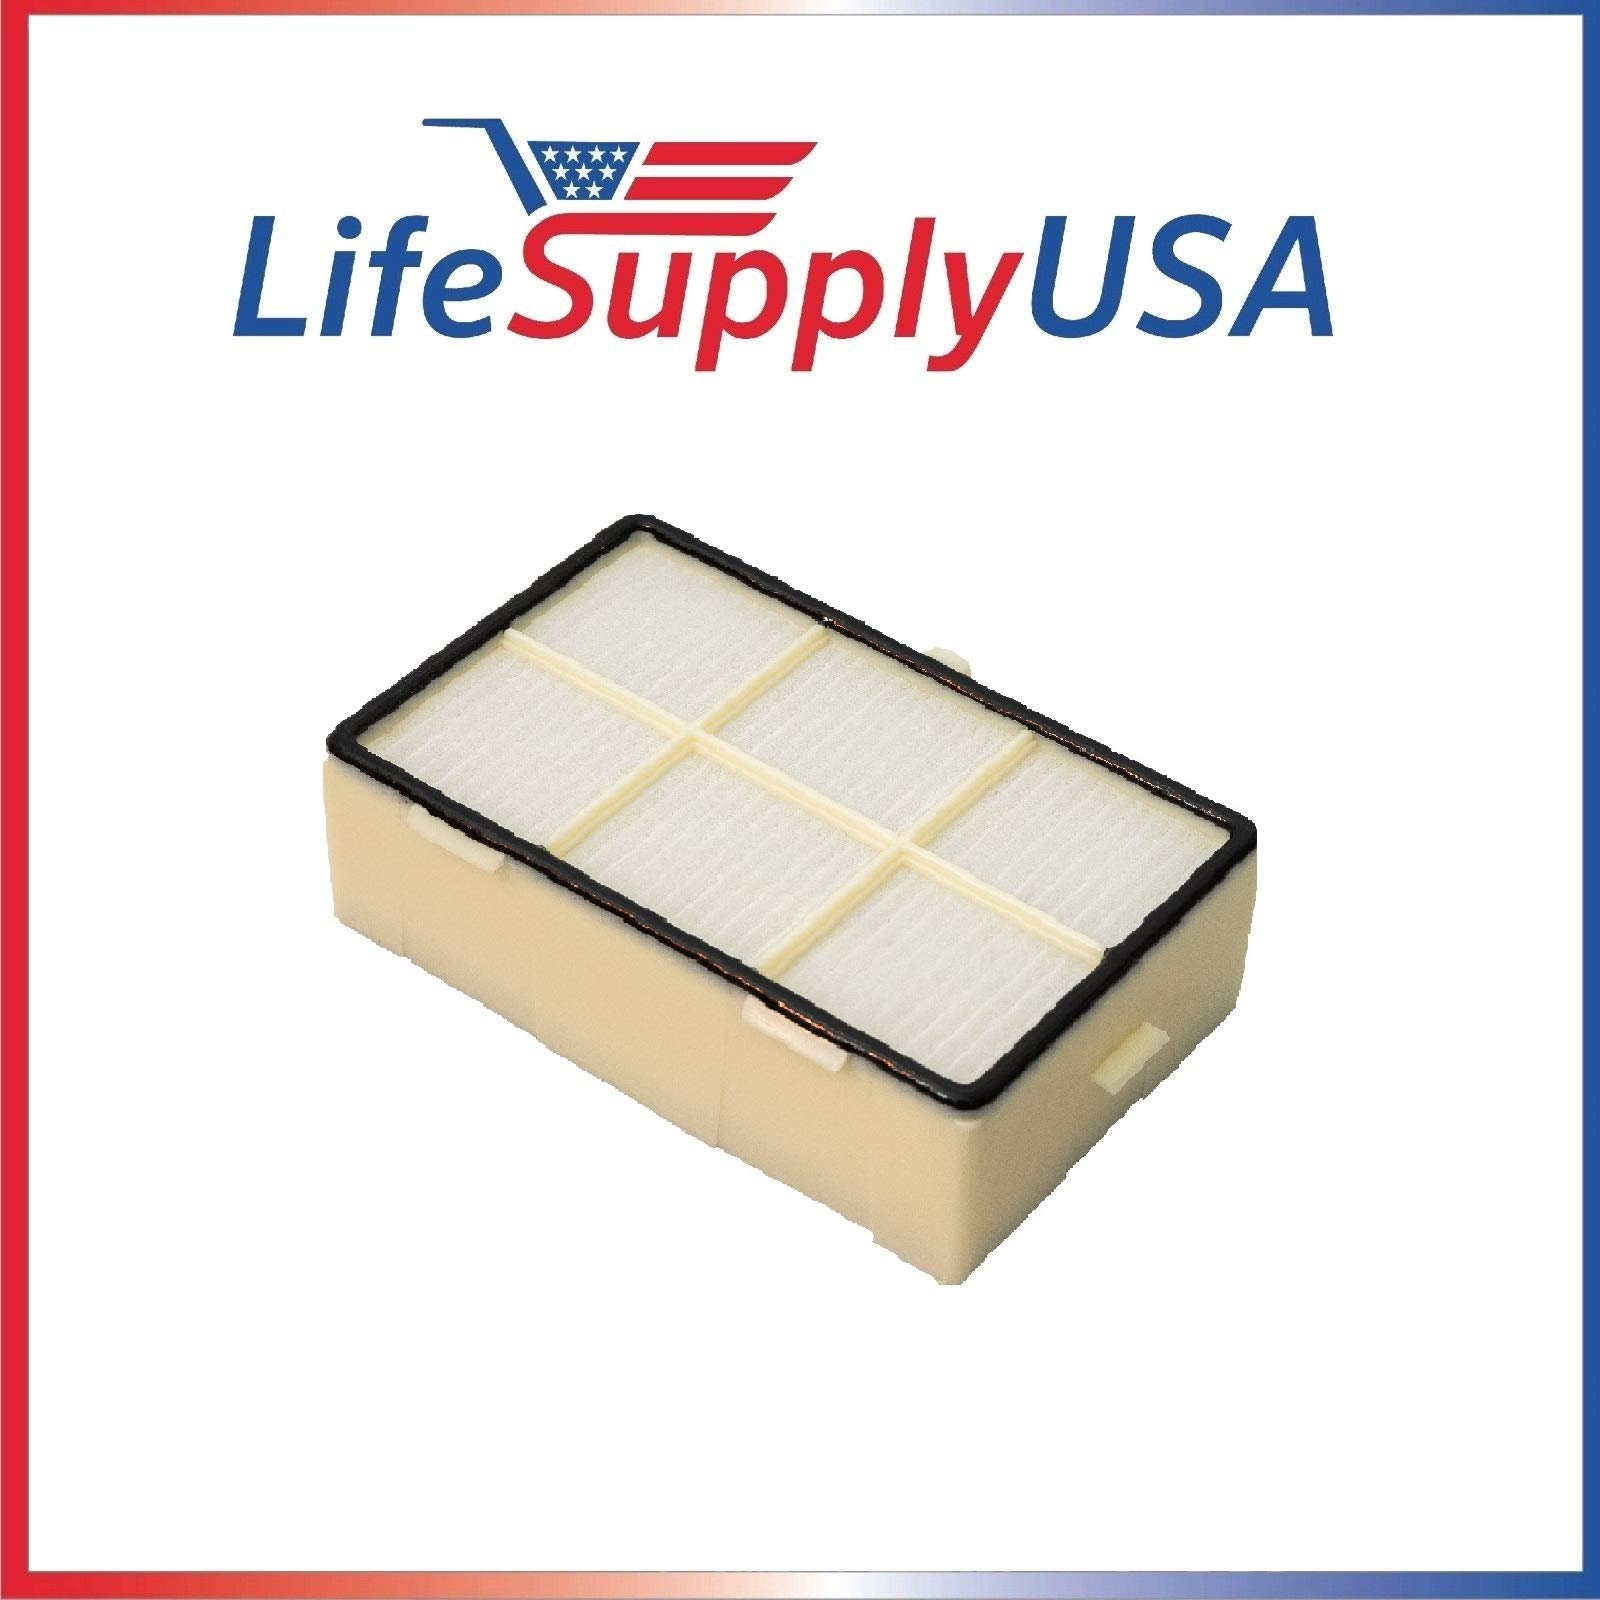 LifeSupplyUSA 10 Pack Replacement HEPA Filter fits Dyson AirBlade Hand Dryer 910112-04, 920336-01, 965359-01, 925985-01, 925985-02, 910112-01, AB01, AB02, AB03, AB04, AB06, and AB15